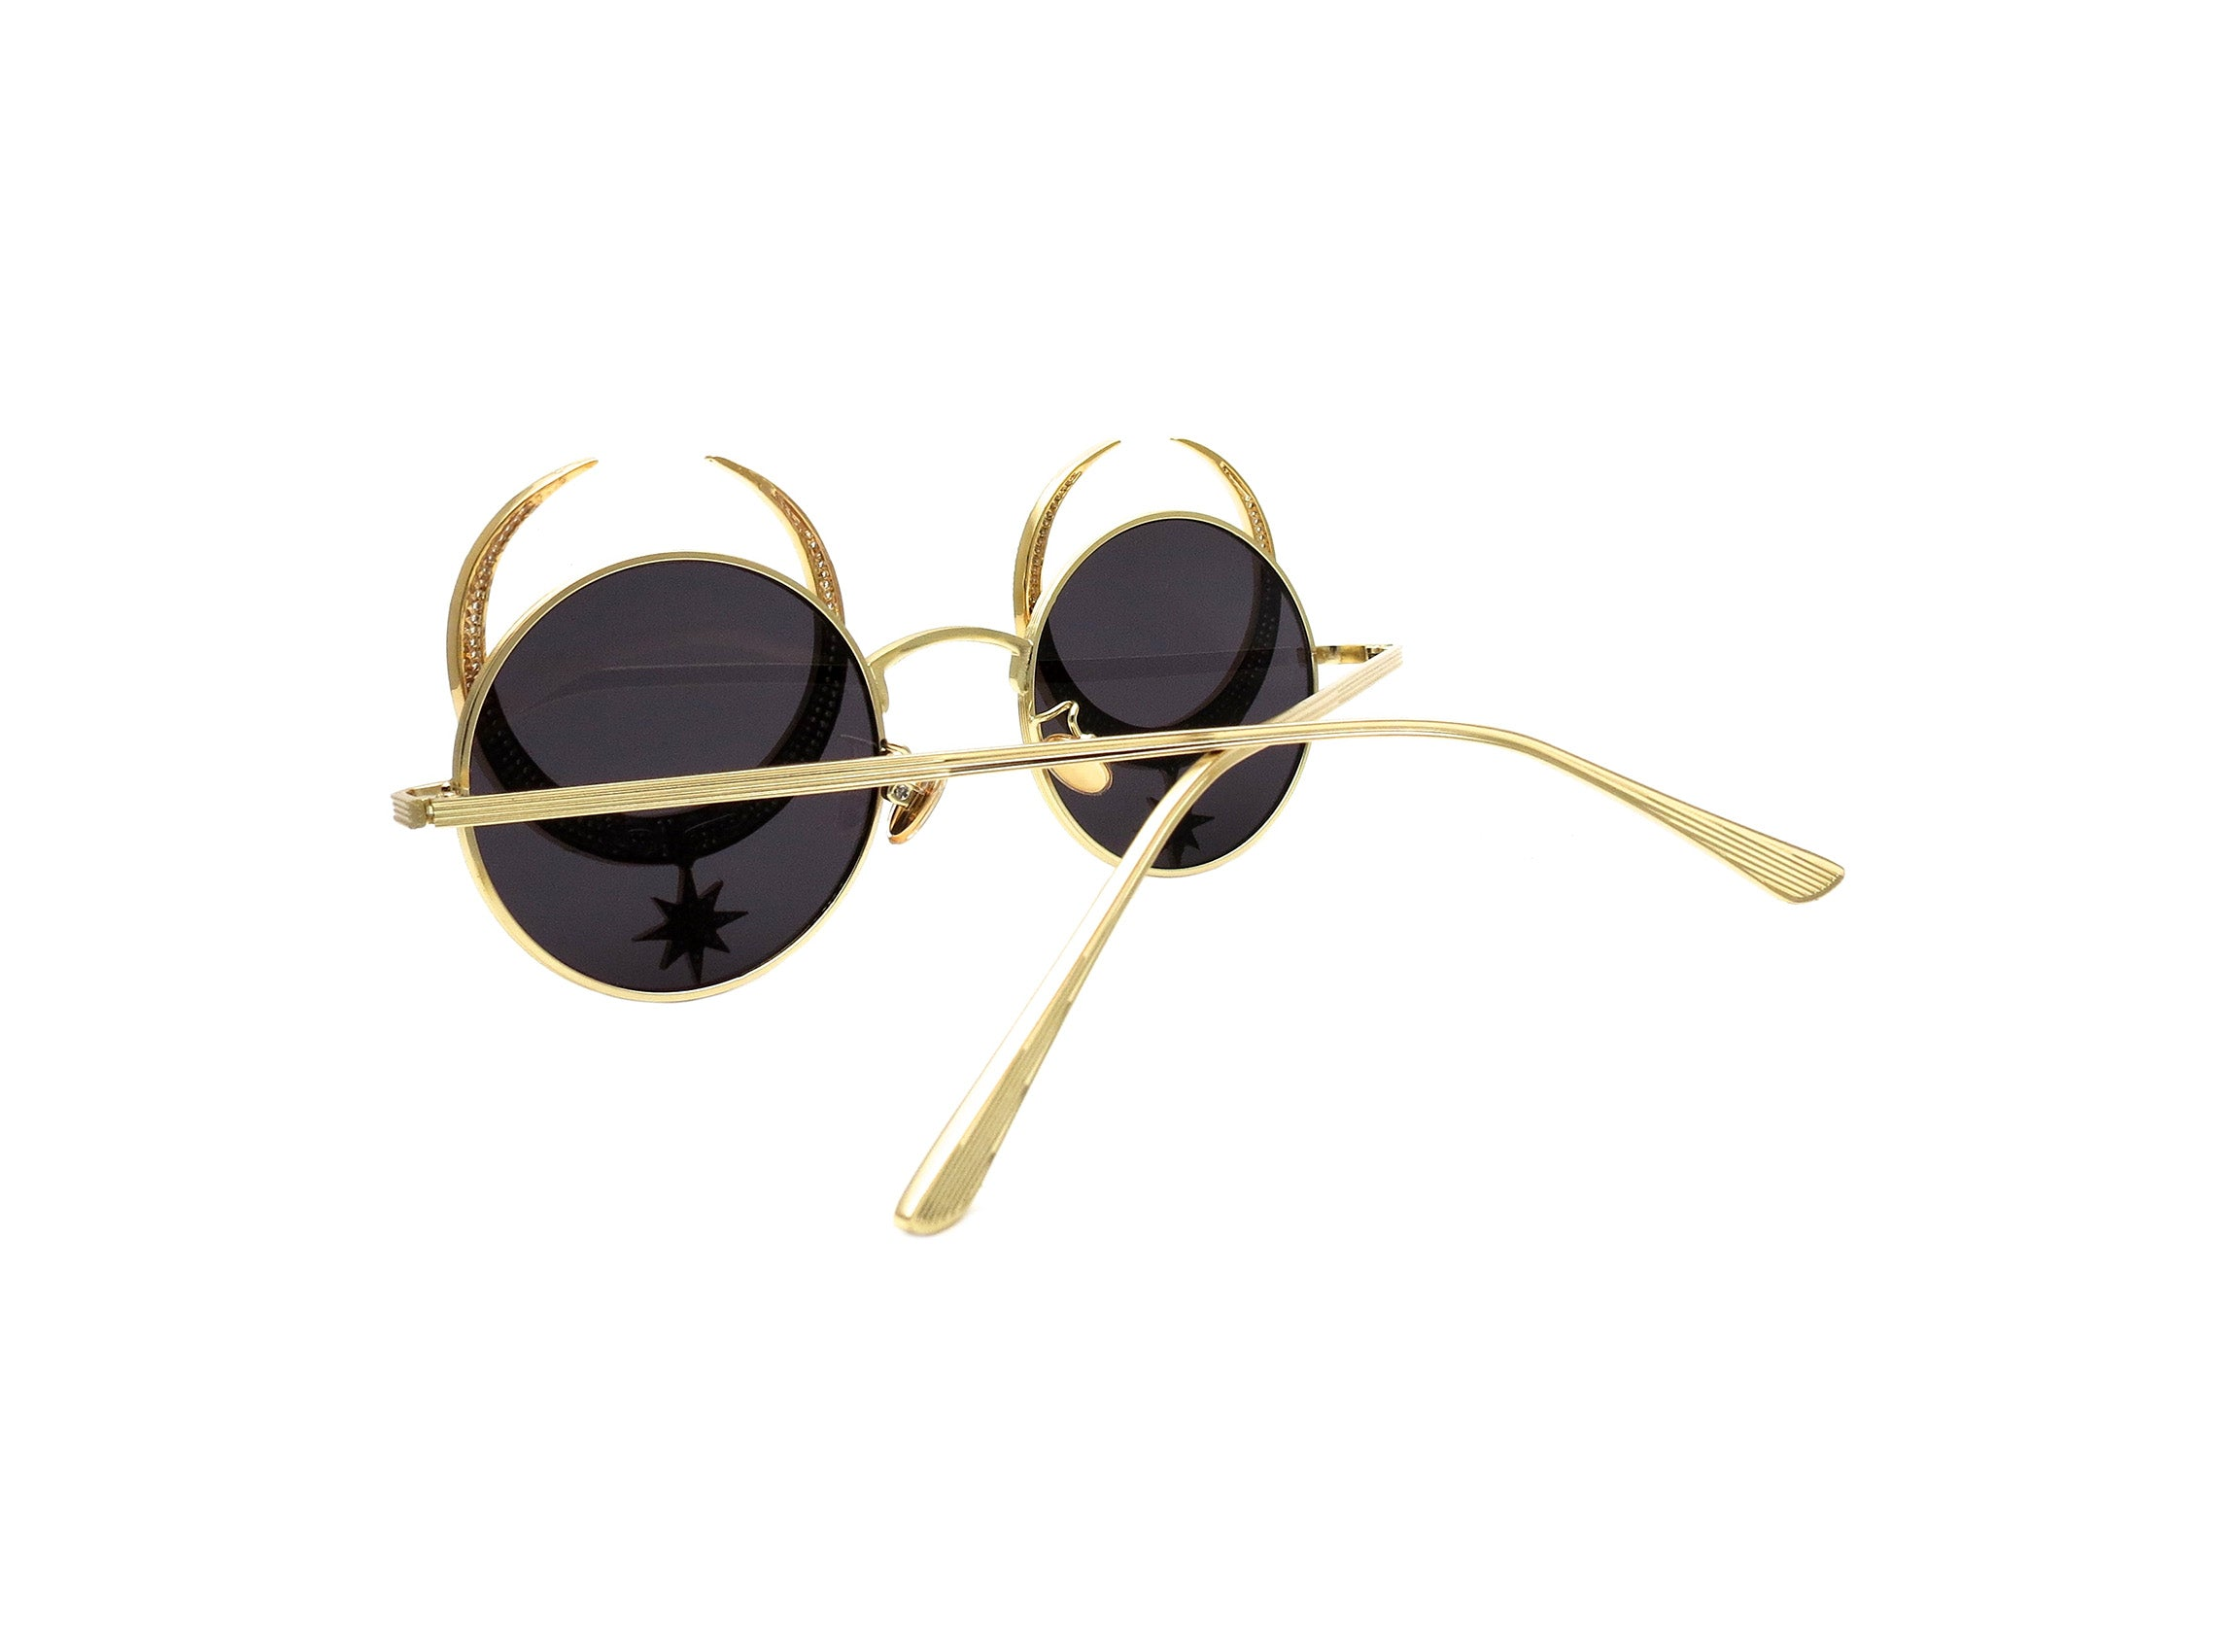 COCO Embellished Sunglasses